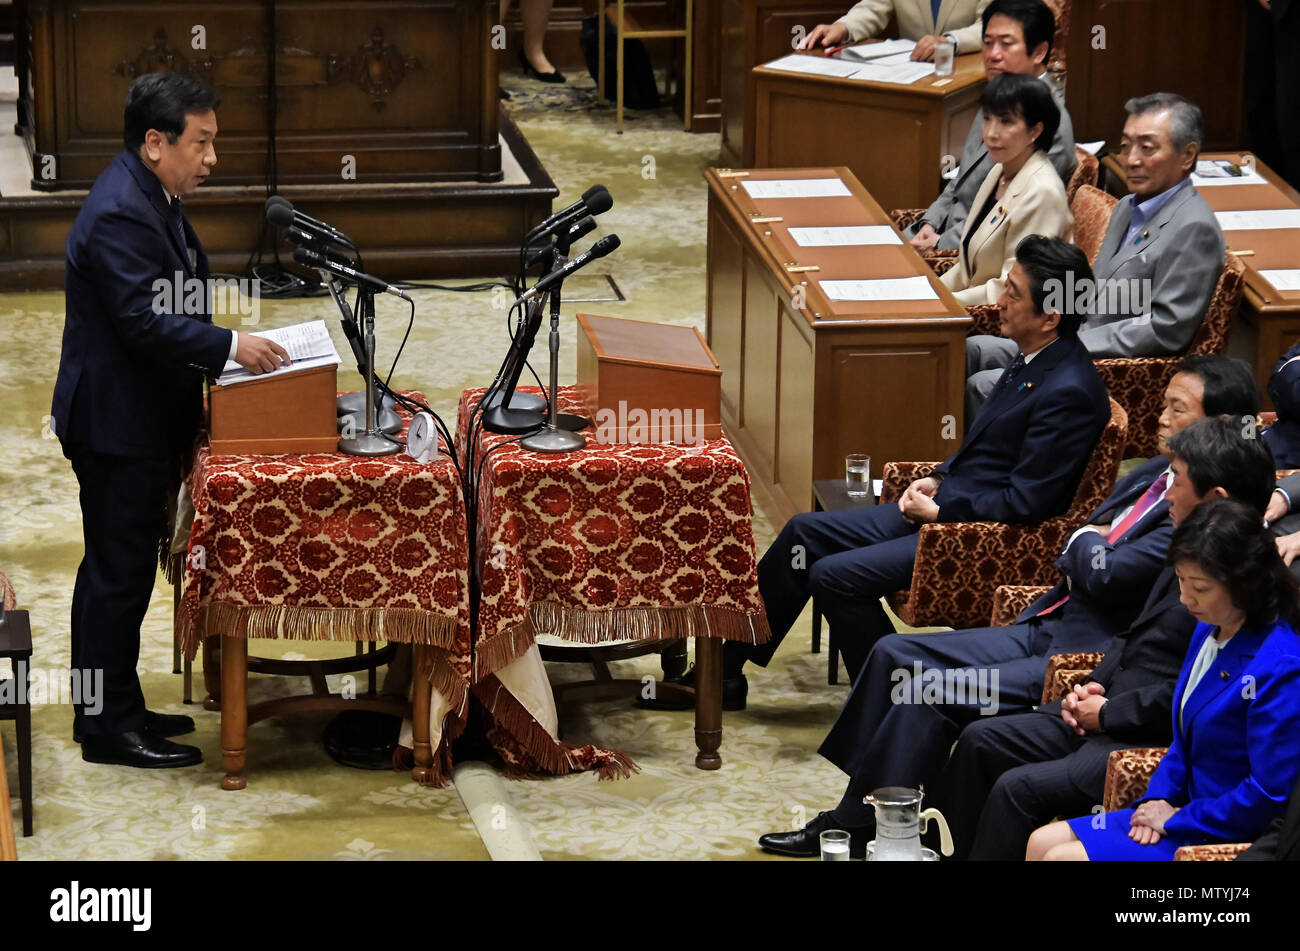 Tokyo, Japan. 30th May 2018. Wednesday. 30th May, 2018. Yukio Edano, leader of the opposition Constitutional Democratic Party of Japan, asks Prime Minister Shinzo Abe questions during a question time in the Diet lower chamber in Tokyo on Wednesday, May 30, 2018. Credit: AFLO/Alamy Live News - Stock Image